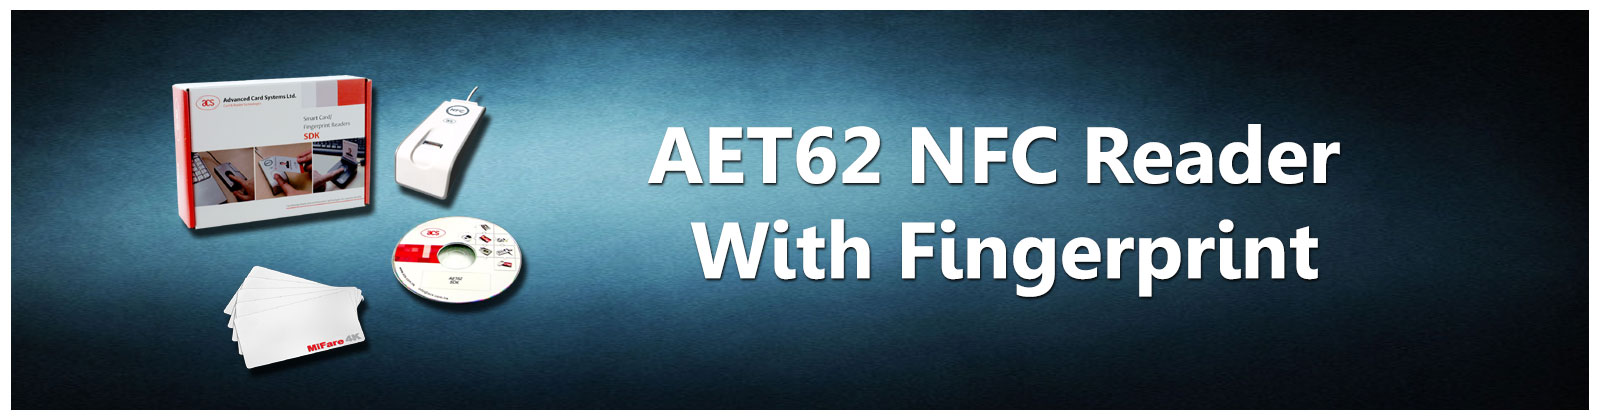 NFC Reader with Fingerprint Sensor SDK | AET62 | BSD InfoTech